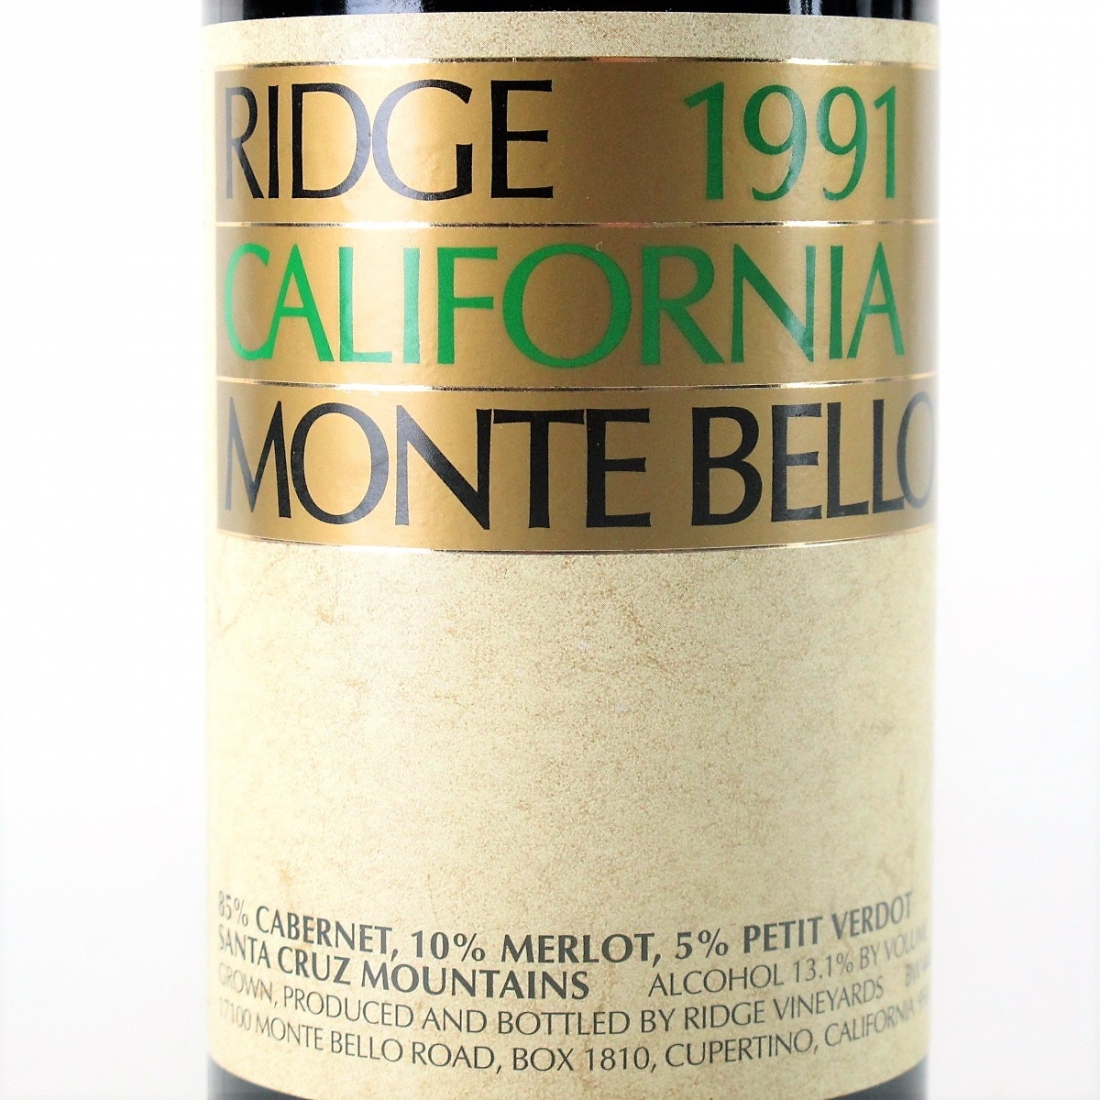 Ridge Monte Bello 1991 Santa Cruz Mountains